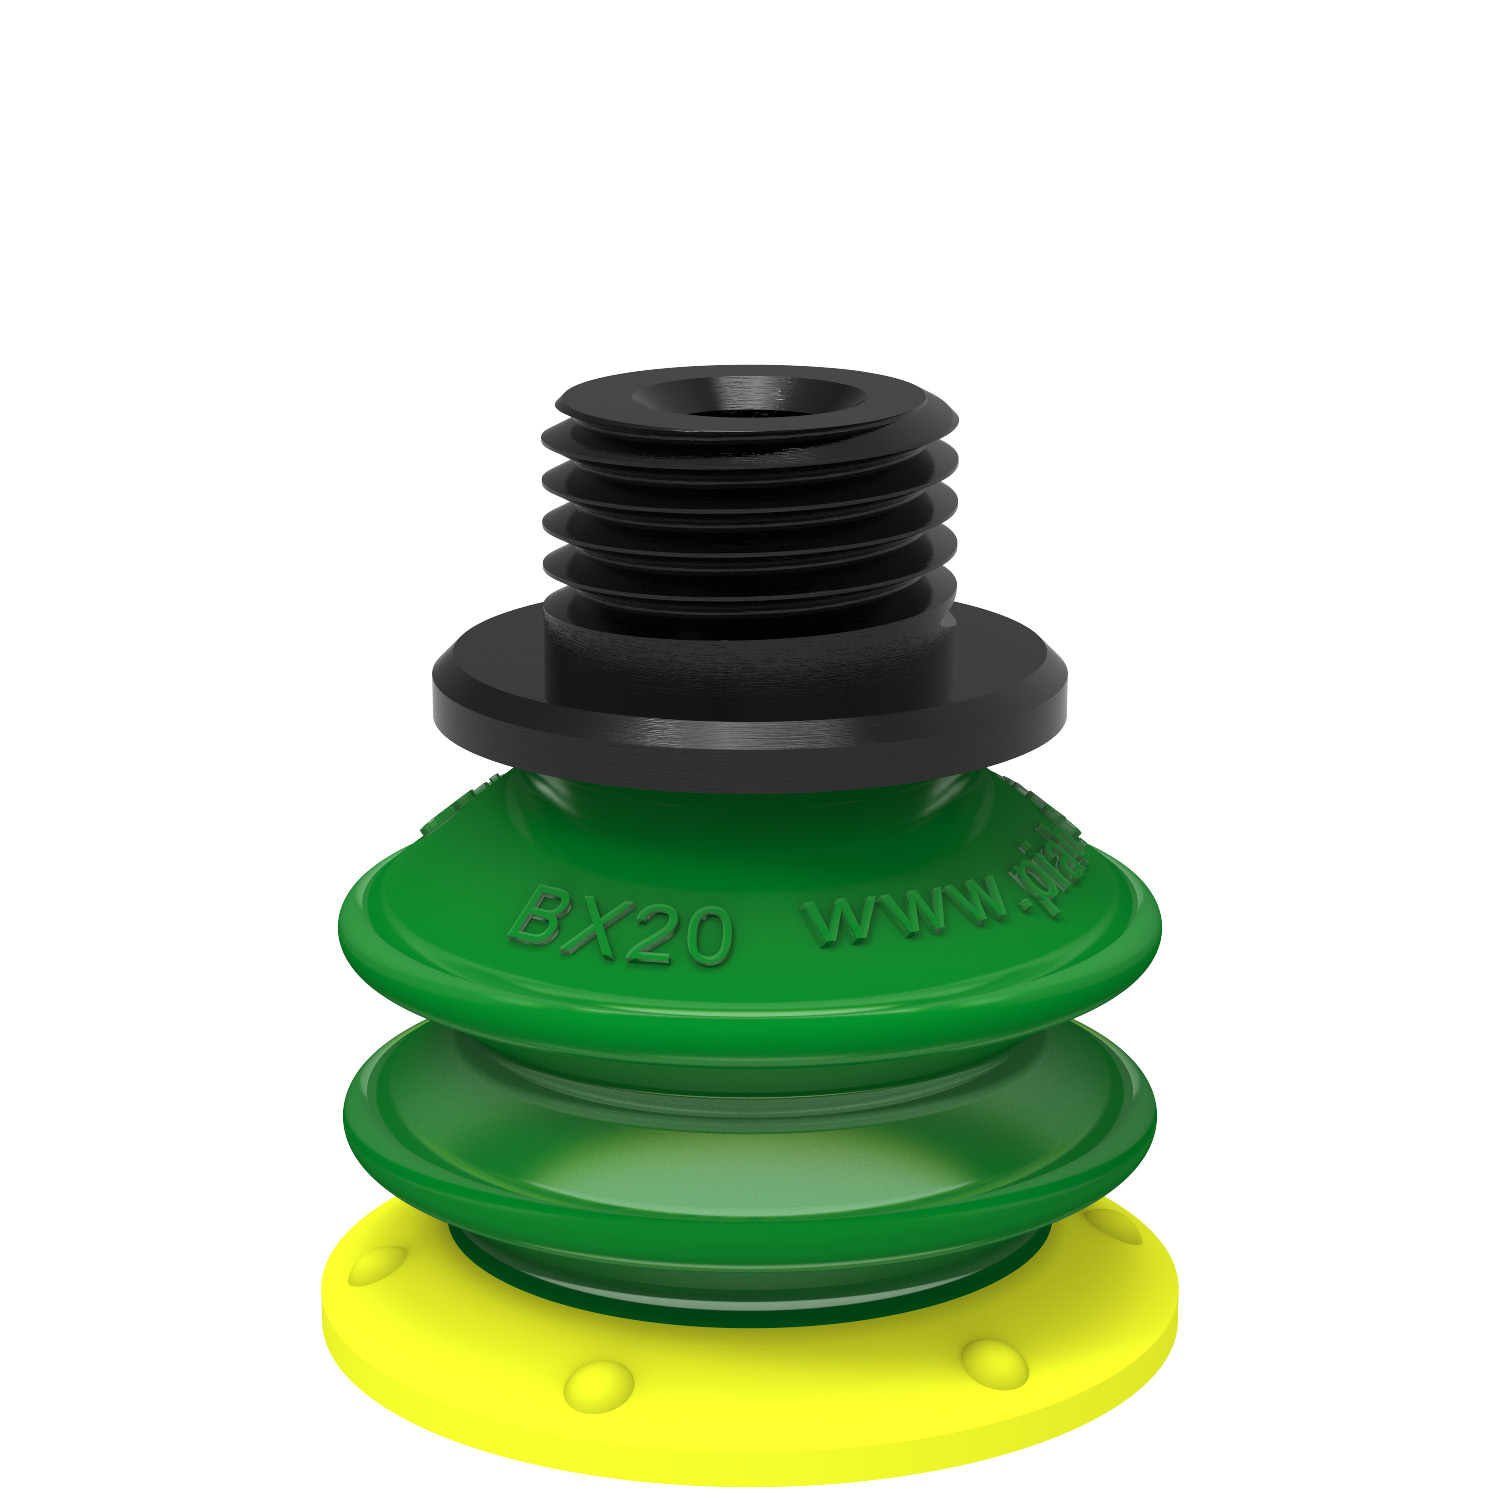 sourcing map Bellows Suction Cup,12mm Diameter x M5 Joint Silicone Vacuum Industrial Pneumatic Suction Cup 4pcs